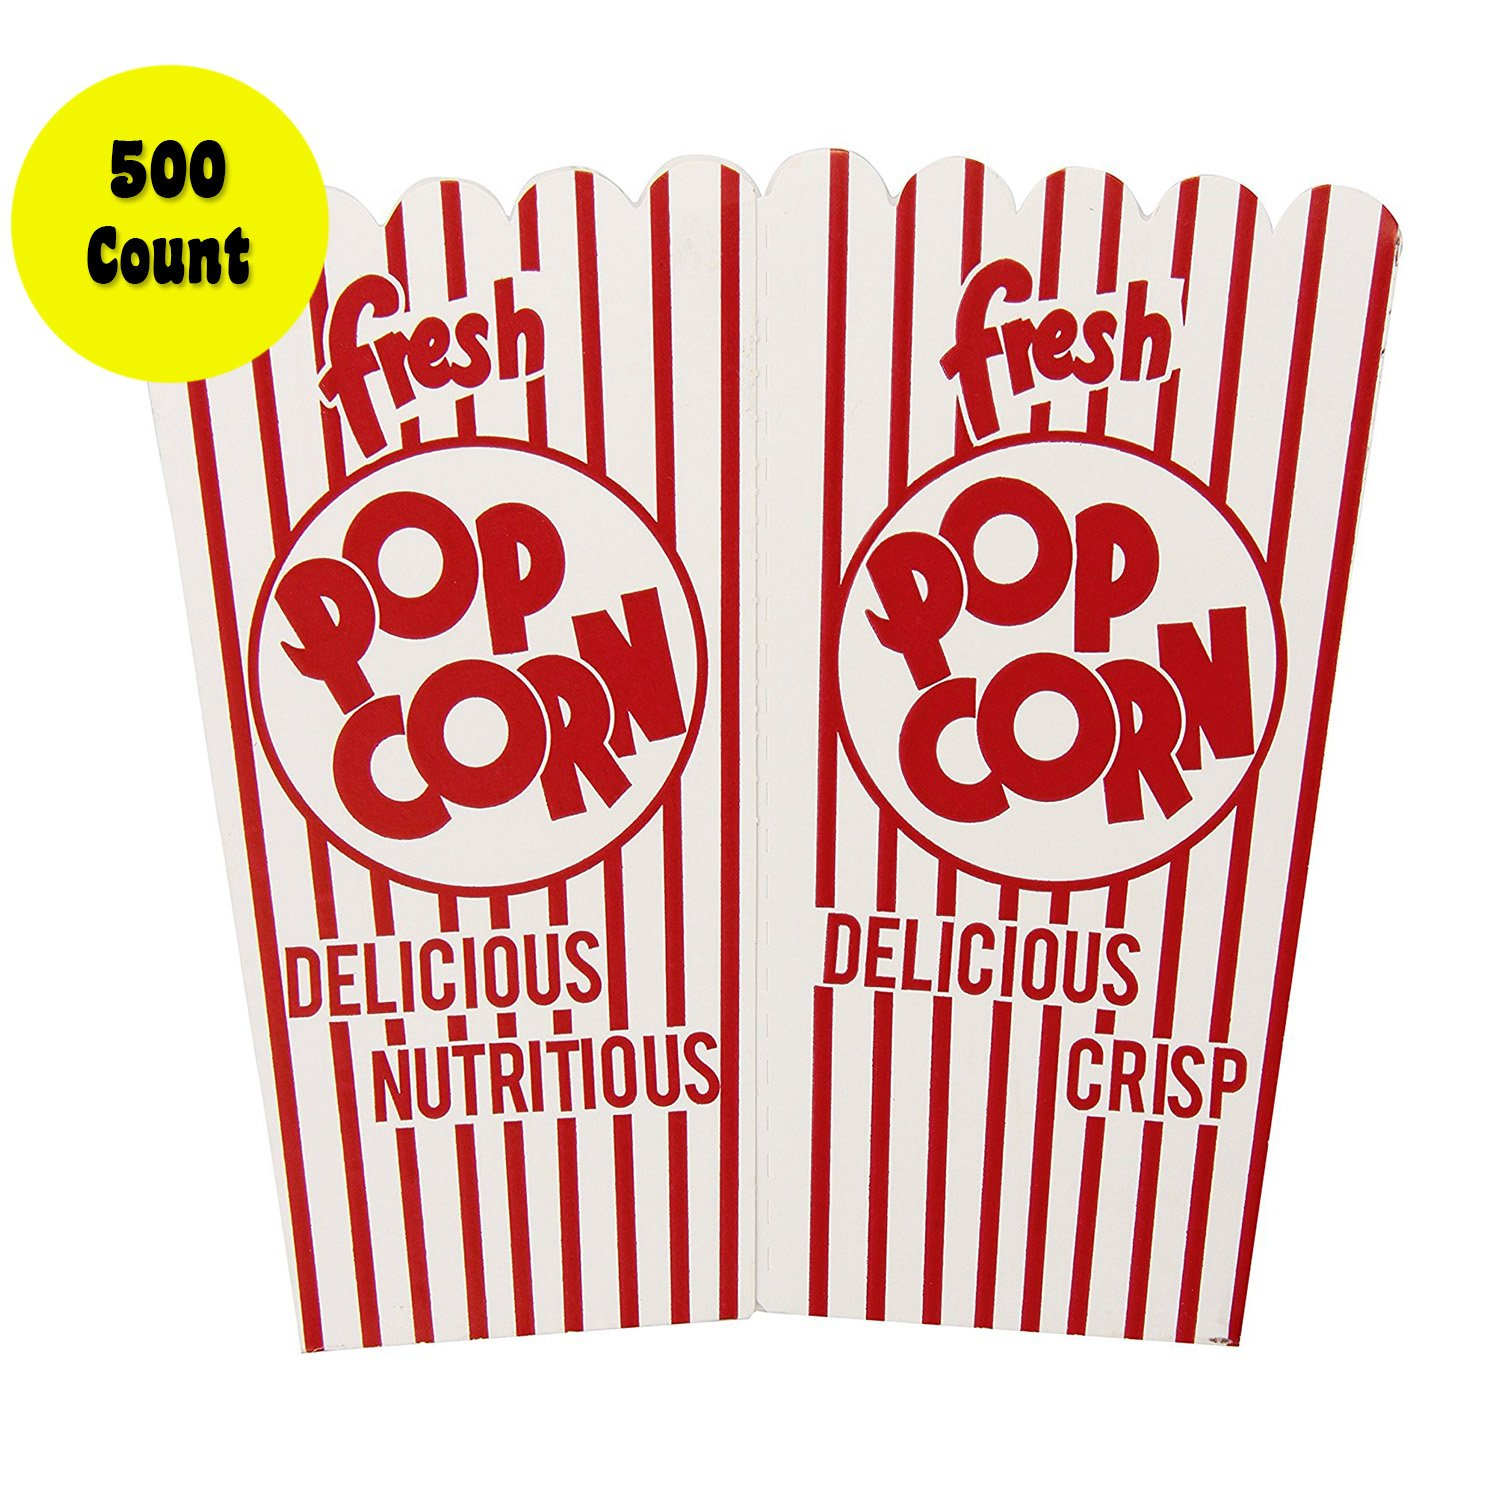 Concession Express 500 Count 44E Open Top Popcorn Scoop Boxes (500 Pack) by Concession Express